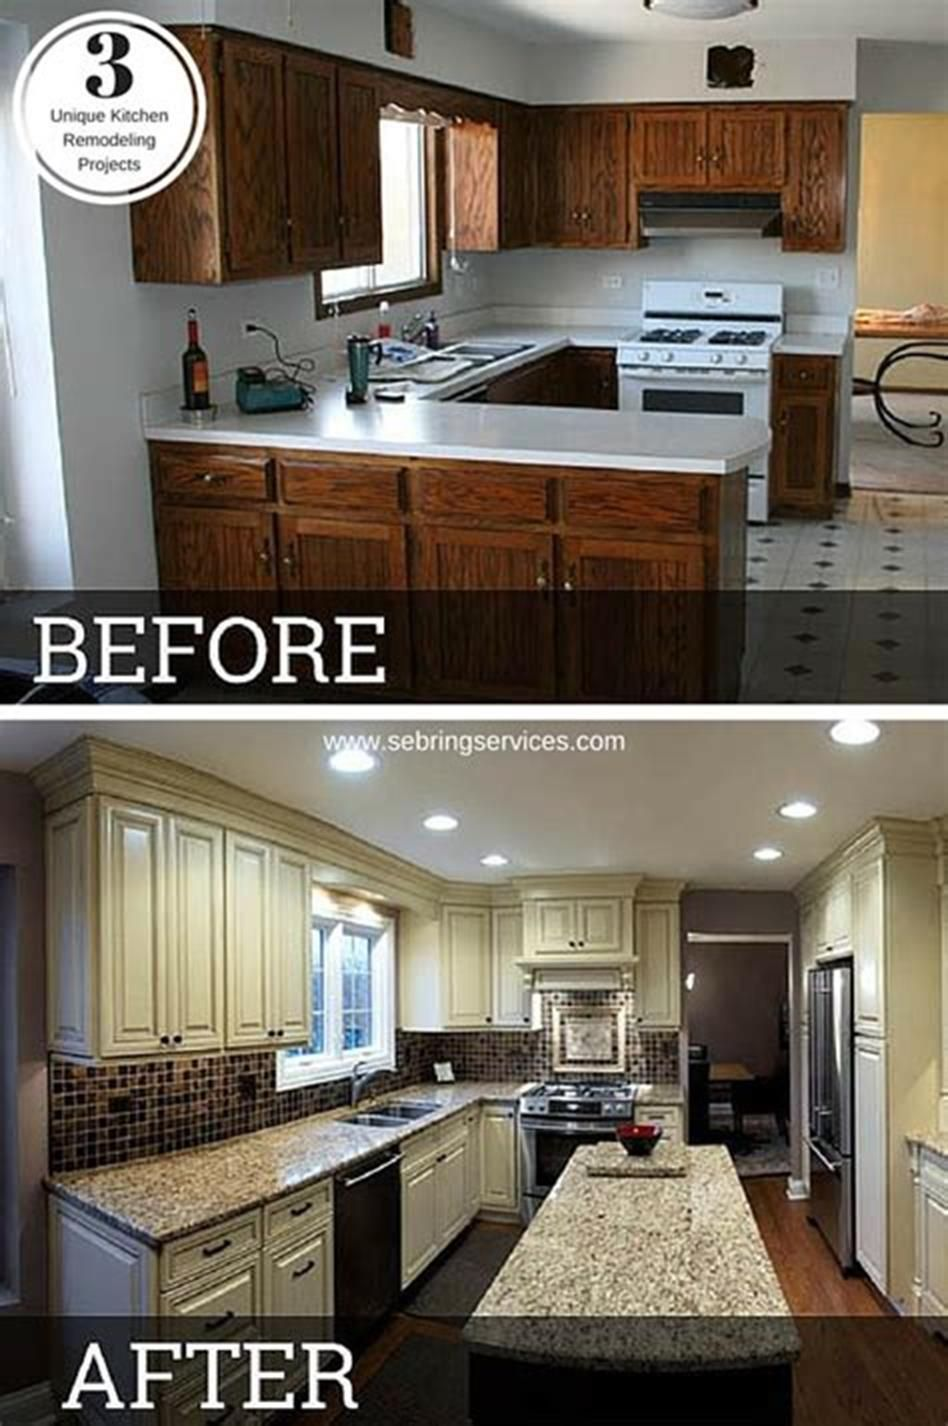 43 Amazing Kitchen Remodeling Ideas For Small Kitchens 2019 Kitchen Remodeling Projects Kitchen Remodel Small Unique Kitchen